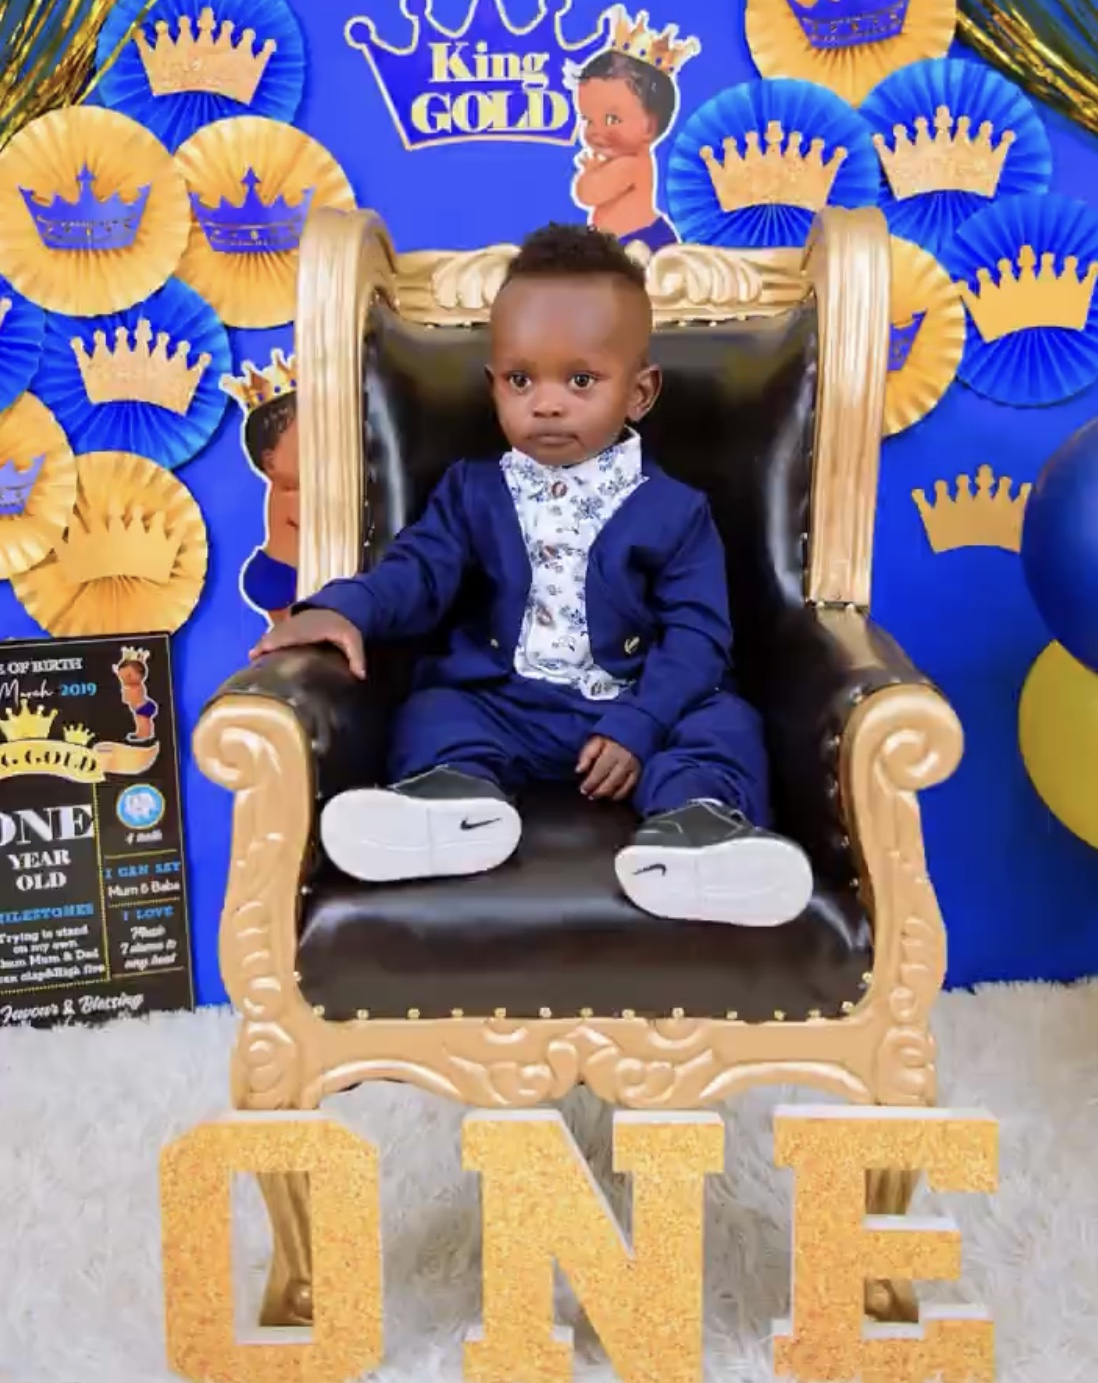 King Gold! Mr Seed and wife celebrate son's 1st birthday